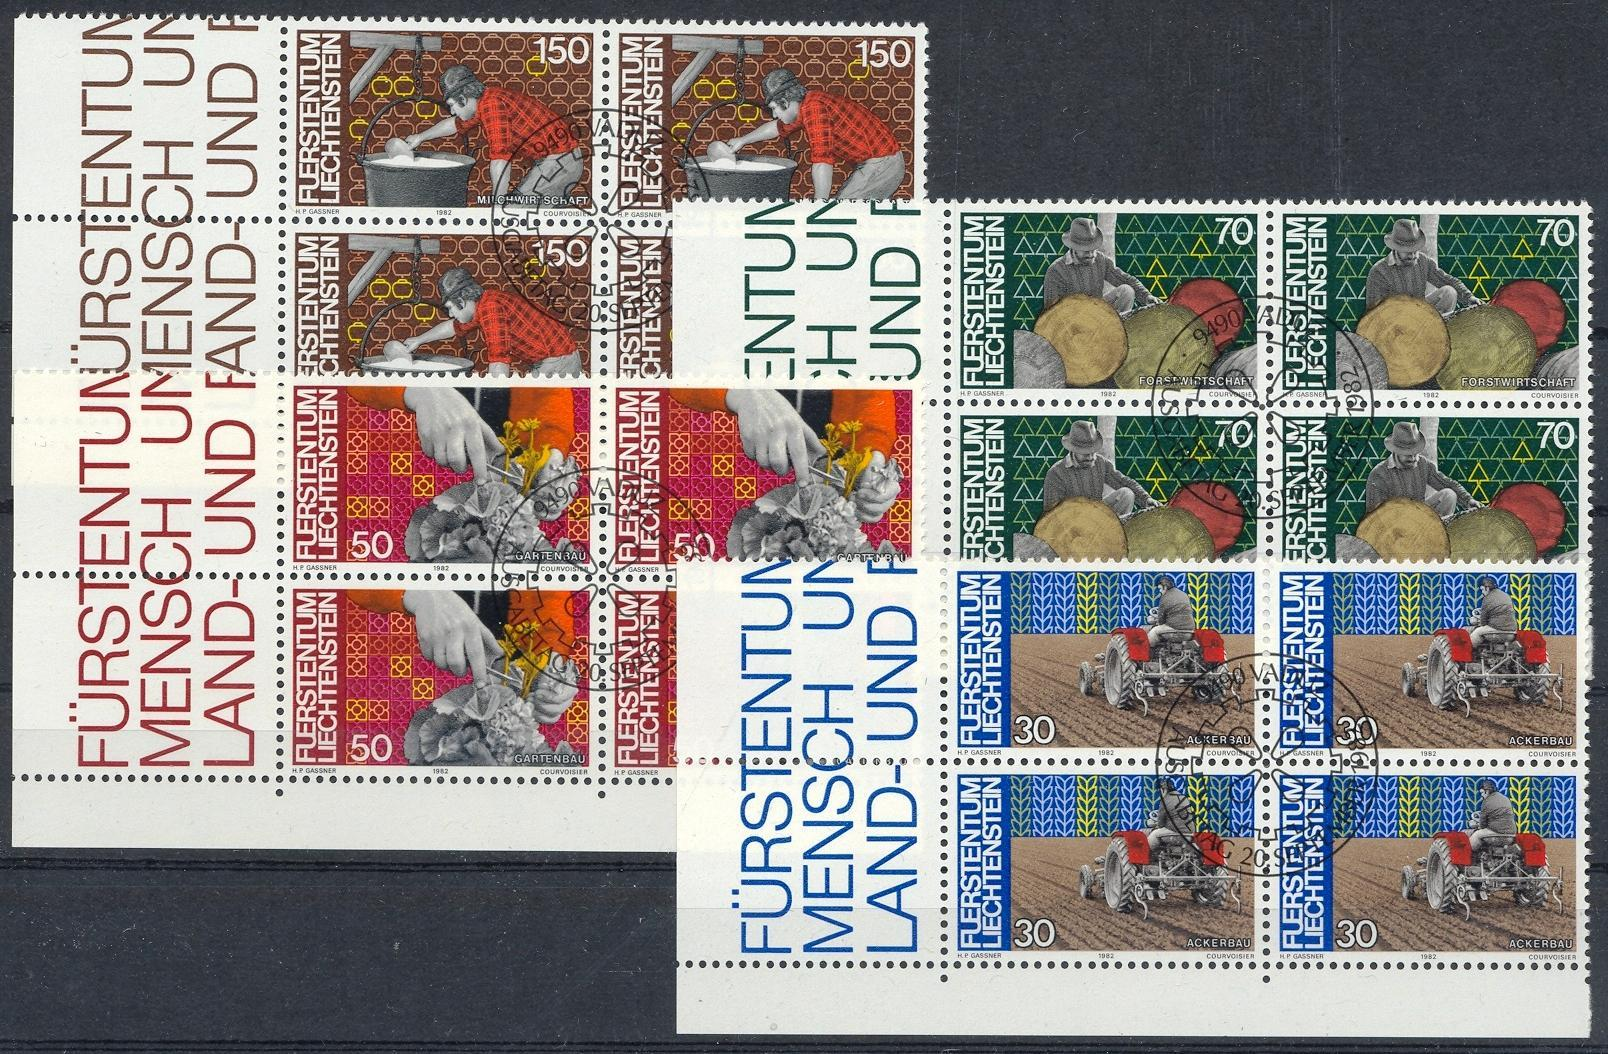 Stamps with Agriculture, Trades from Liechtenstein (image for product #032171)